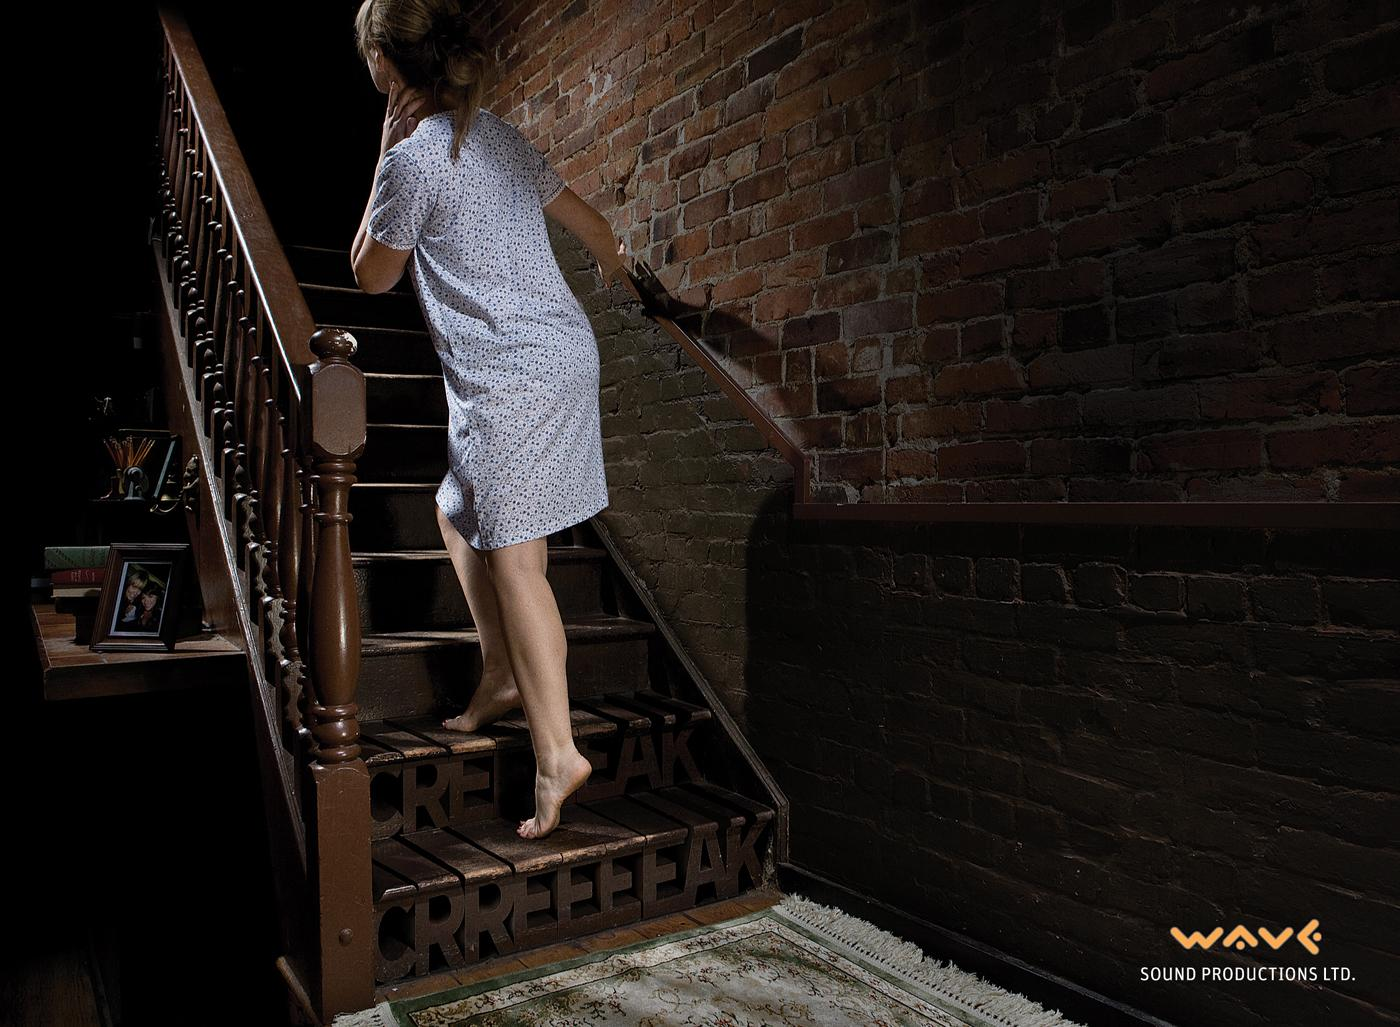 Wave Sound Productions Print Ad -  Stairs